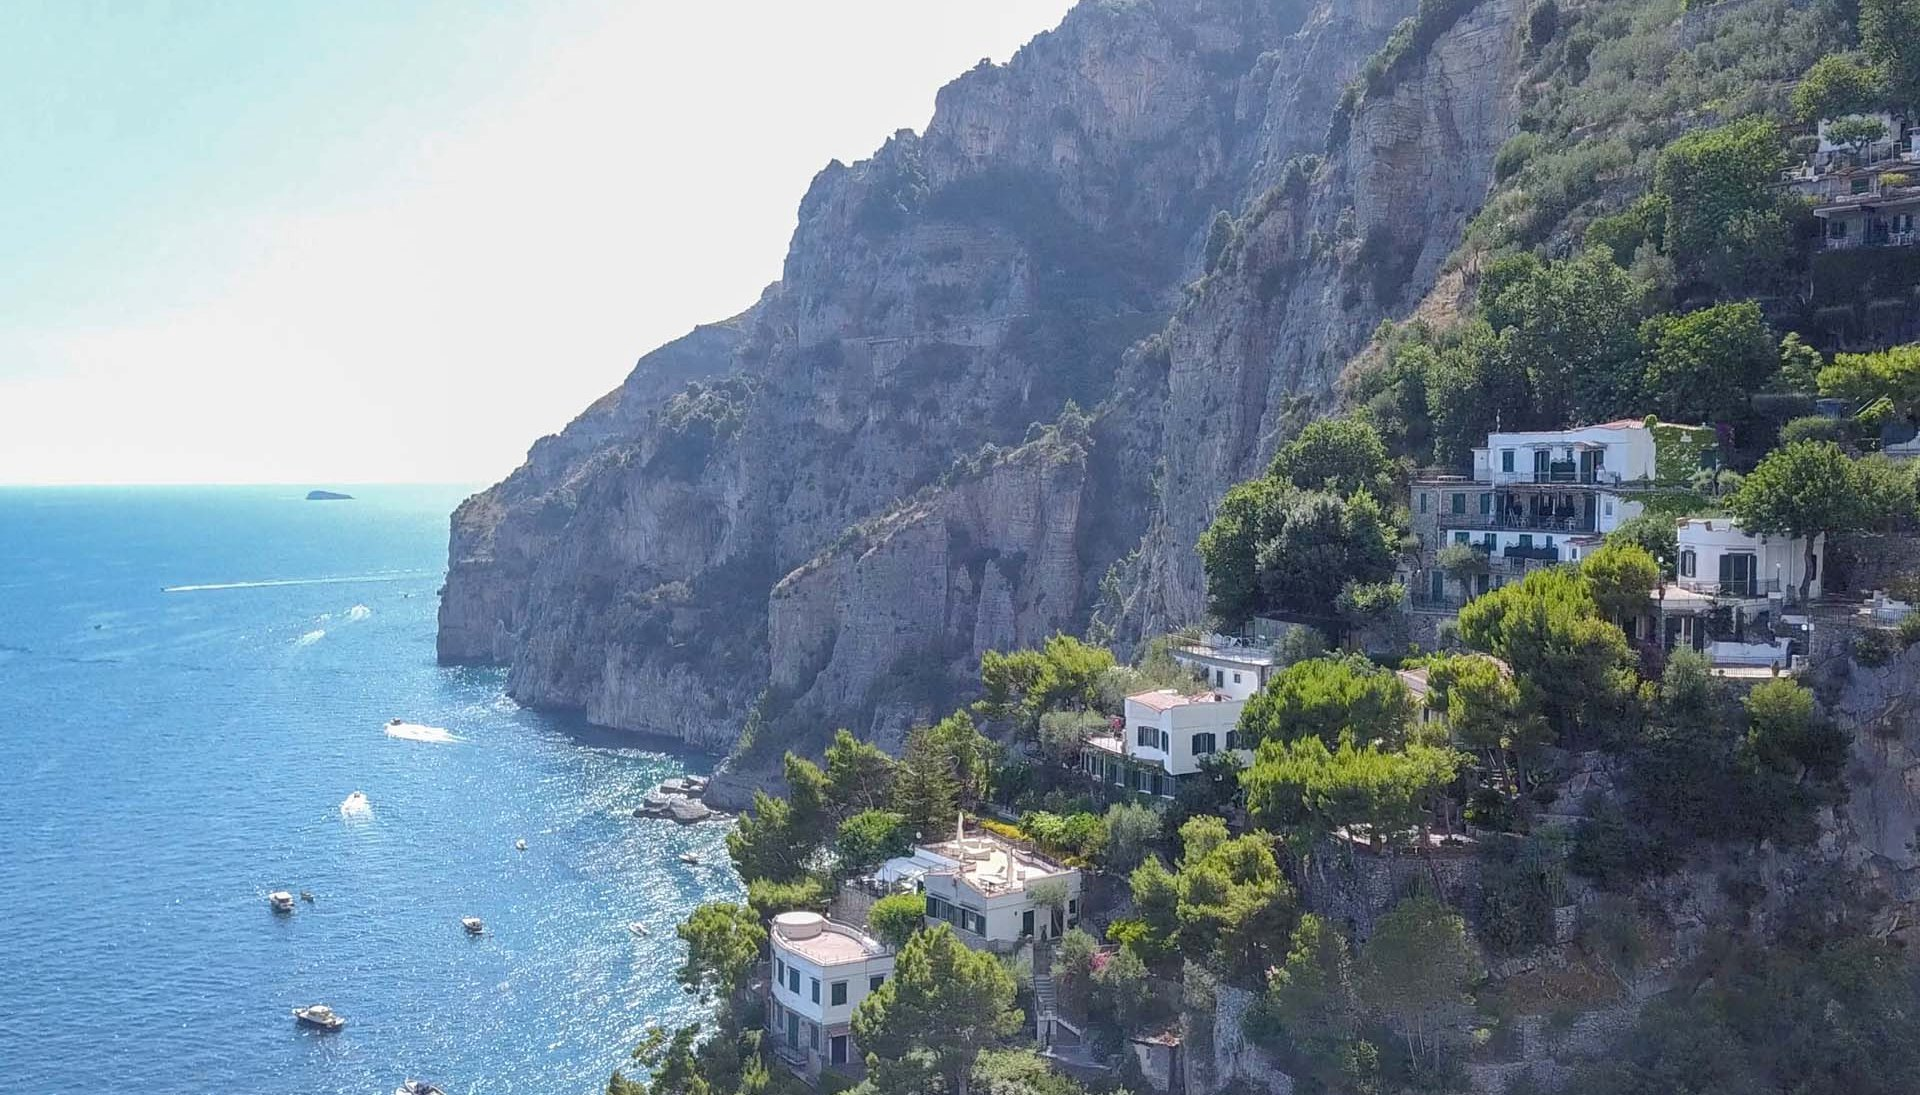 LUXURY WATERFRONT VILLA FOR SALE IN AMALFI COAST